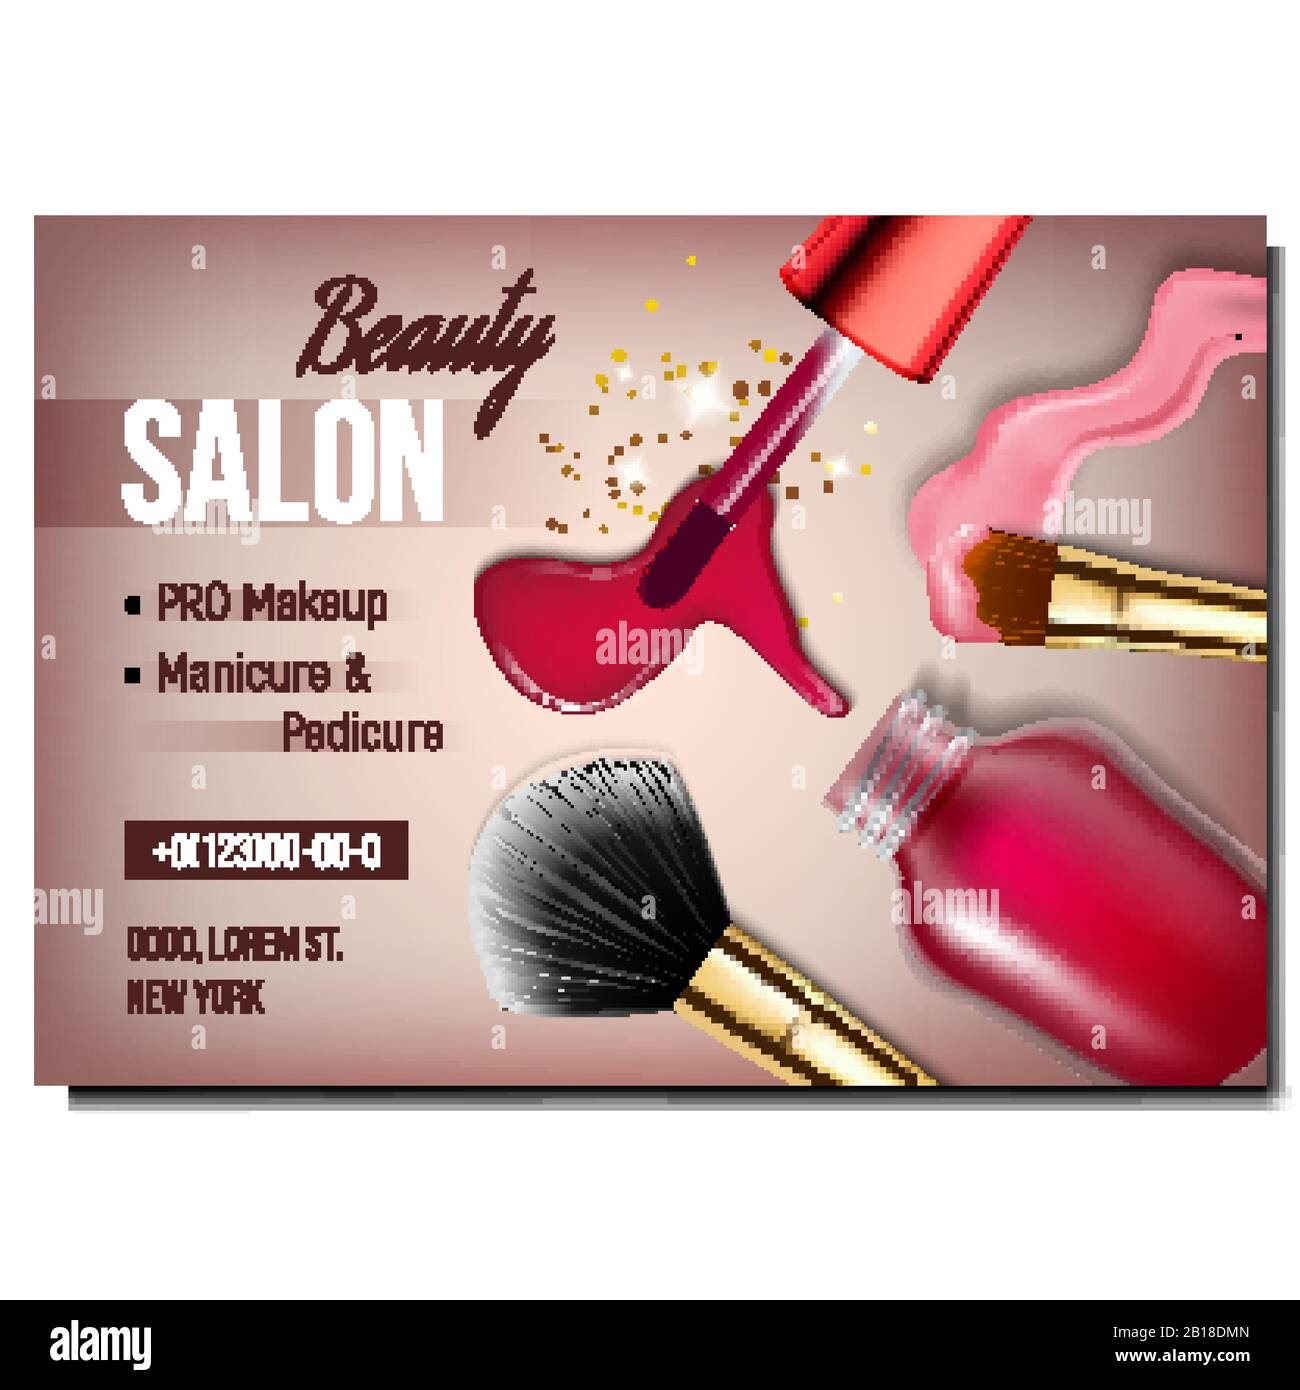 Advertising Beauty Salon High Resolution Stock Photography And Images Alamy